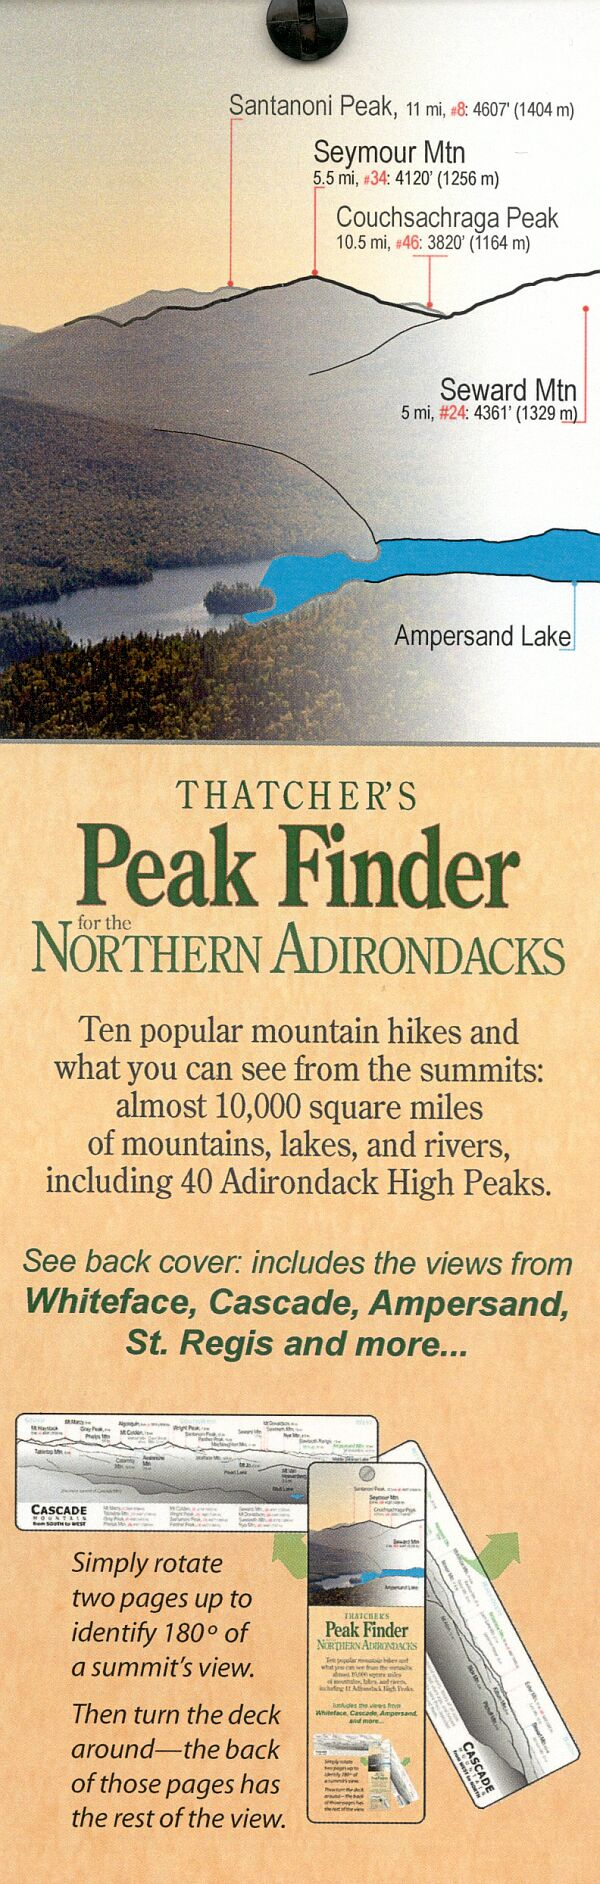 Thatcher's Peak Finder for the Northern Adirondacks